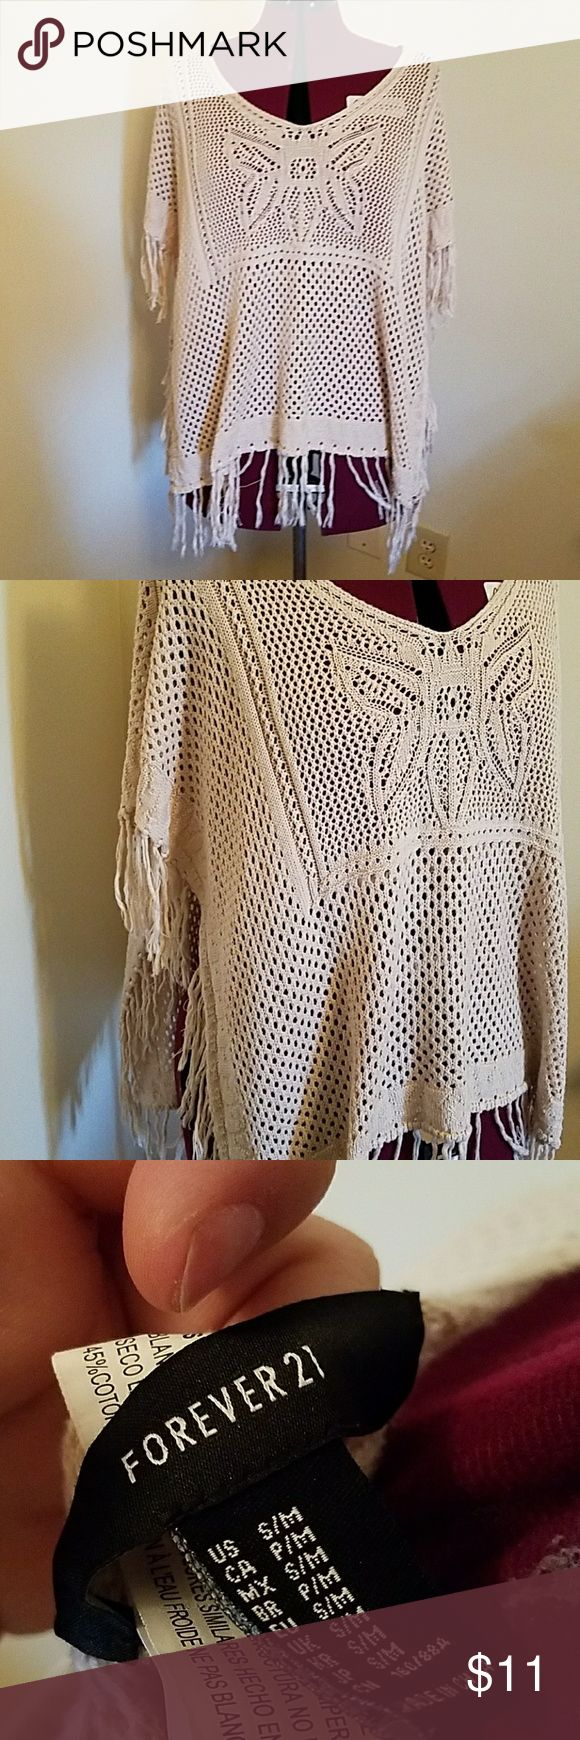 Beige Crochet Poncho Lightly worn and still in great condition. This beige poncho is great for all seasons. Because it is so lightweight you can either wear it over a tank top use it to layer or even wear it over a bathing suit or bandeau. Size small/medium. Has fringe on the bottom. 55% acrylic and 45% cotton. Forever 21 Sweaters Shrugs & Ponchos